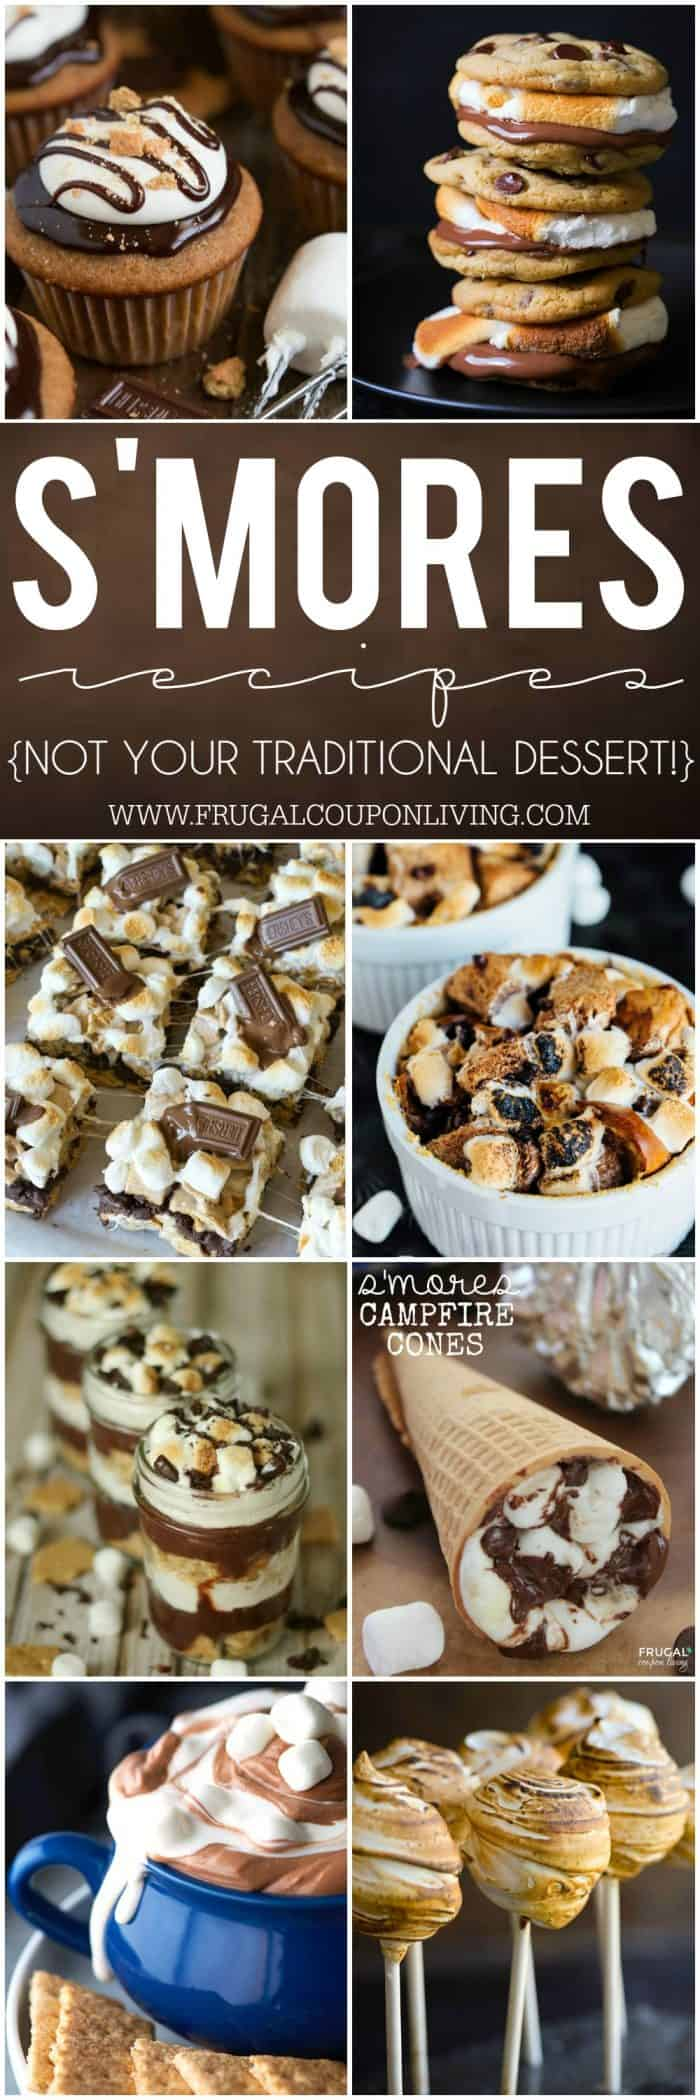 smores-recipes-collage-frugal-coupon-living-long